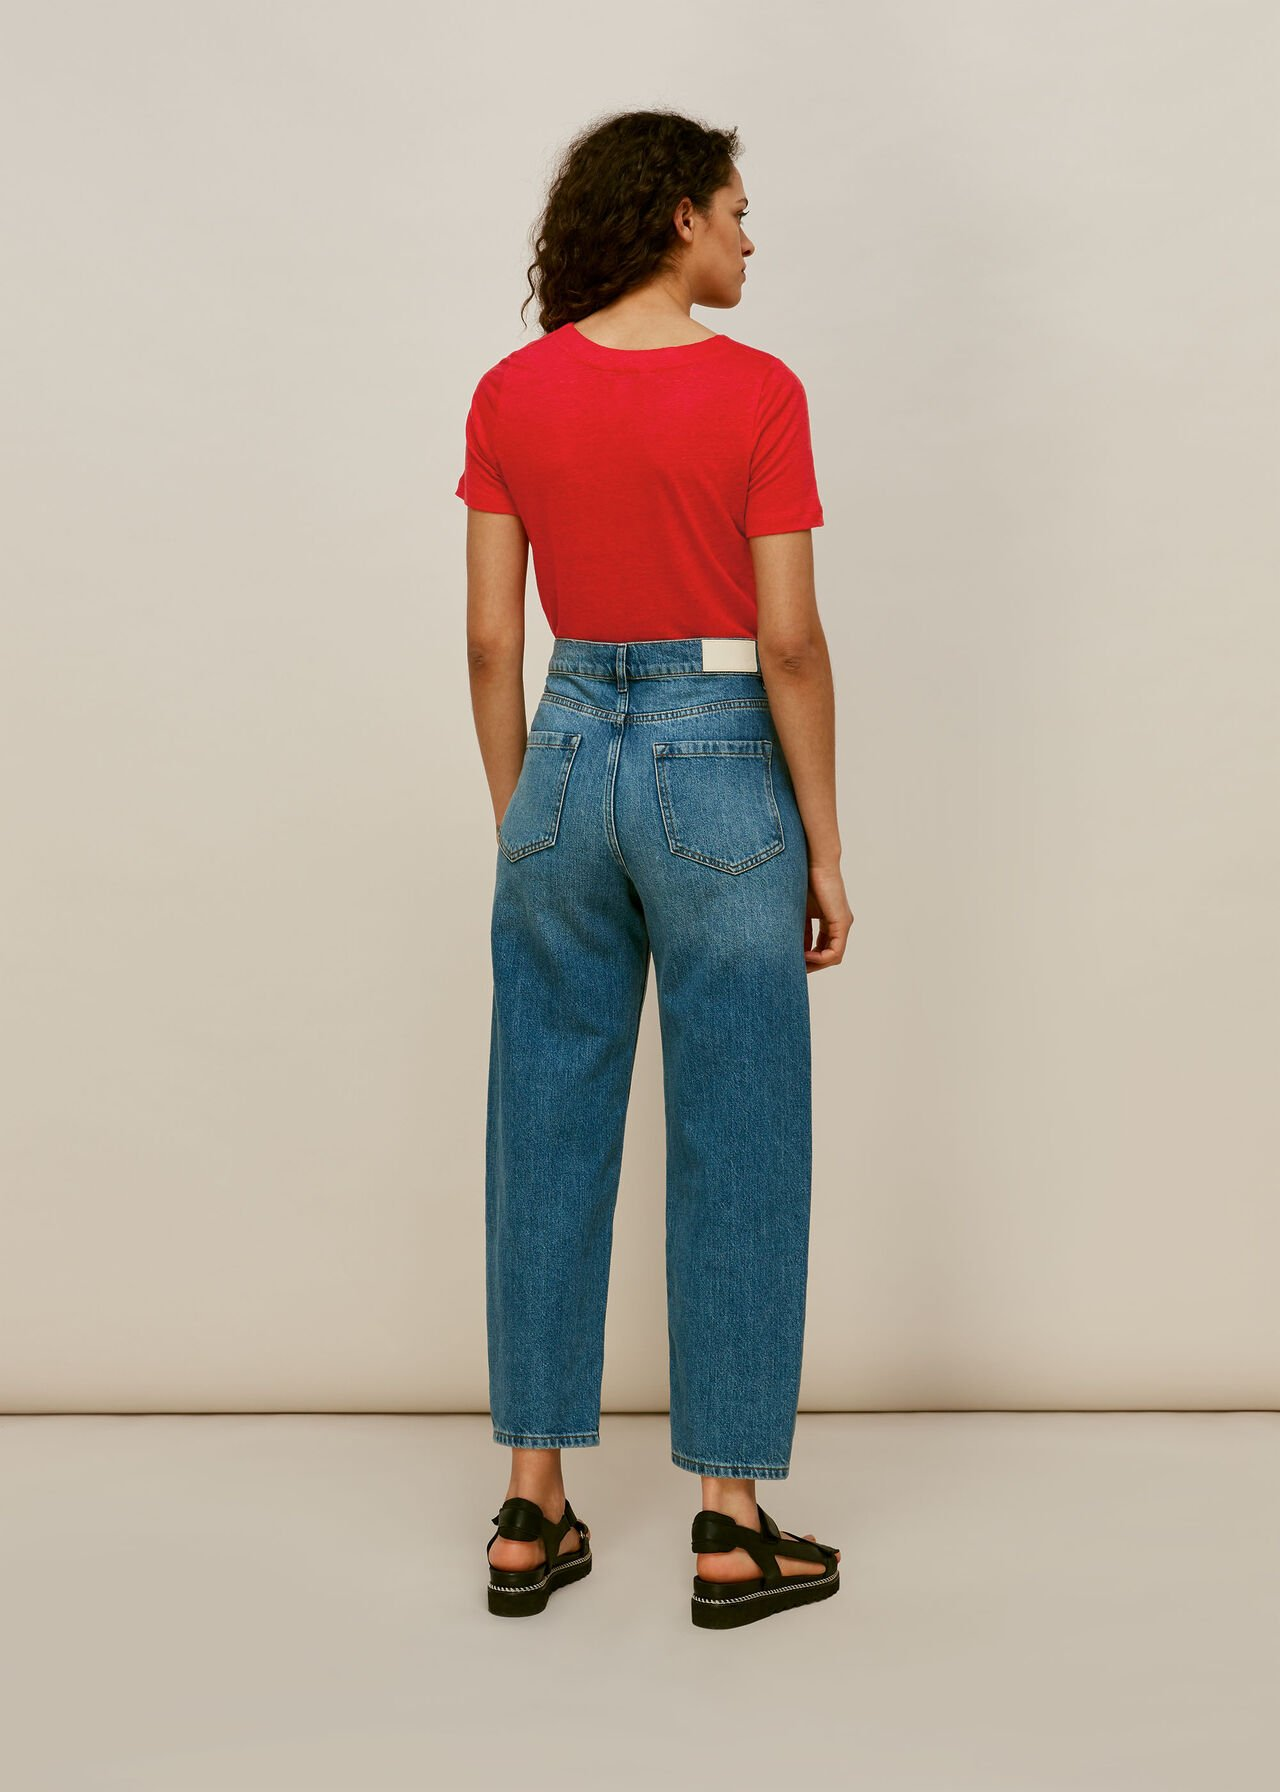 Linen Button Front Tie Top Red